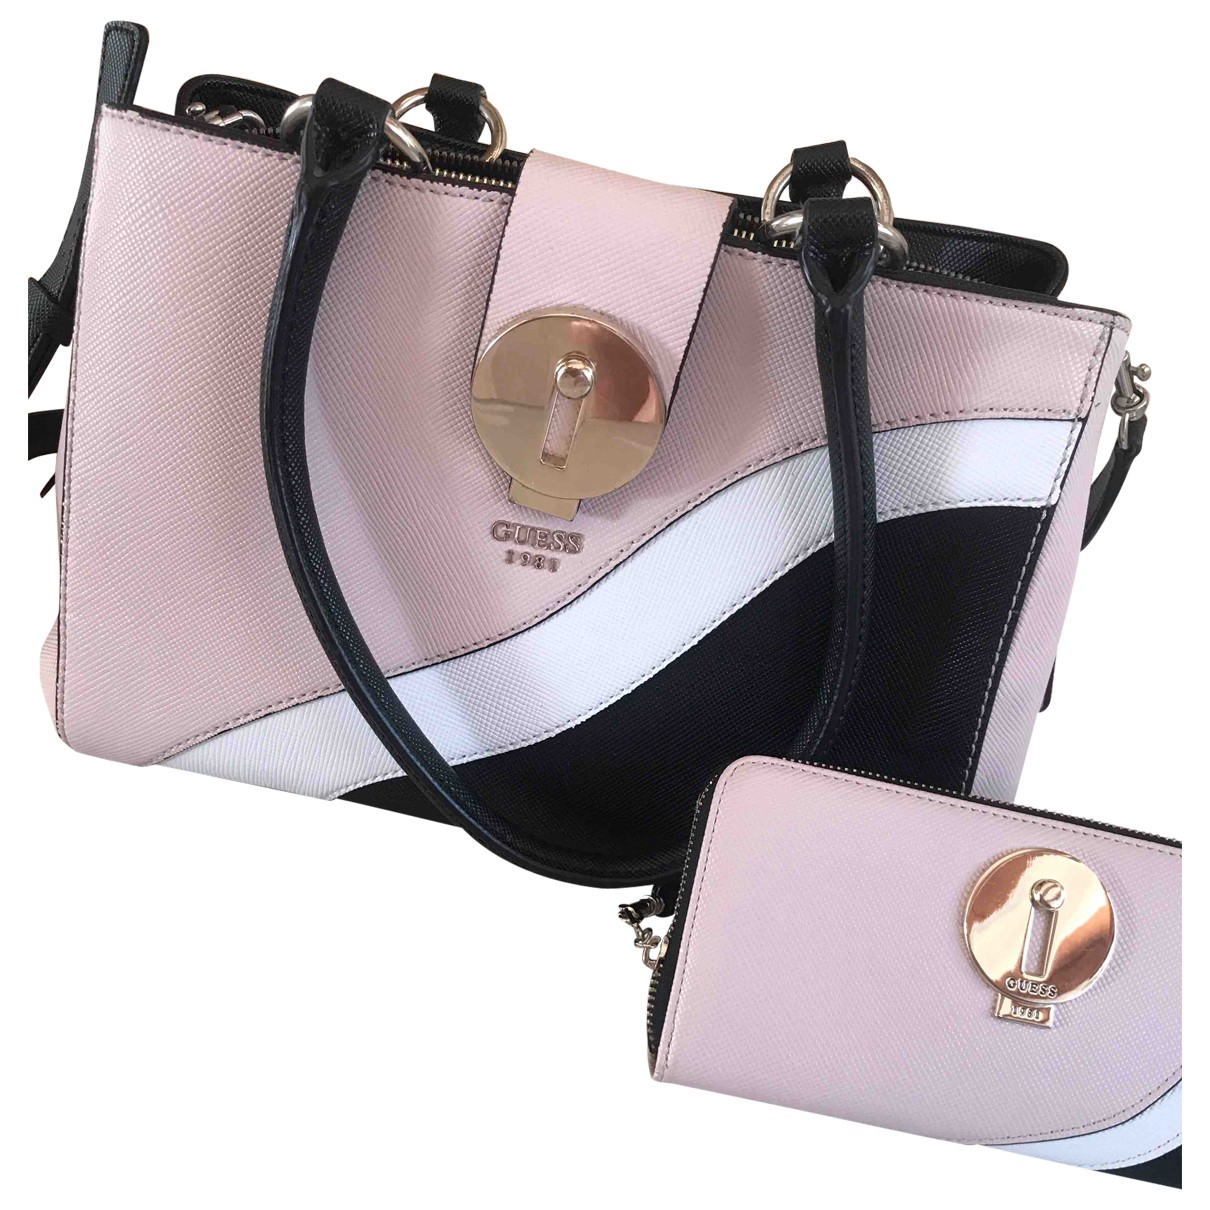 Guess \N Pink Leather handbag for Women \N